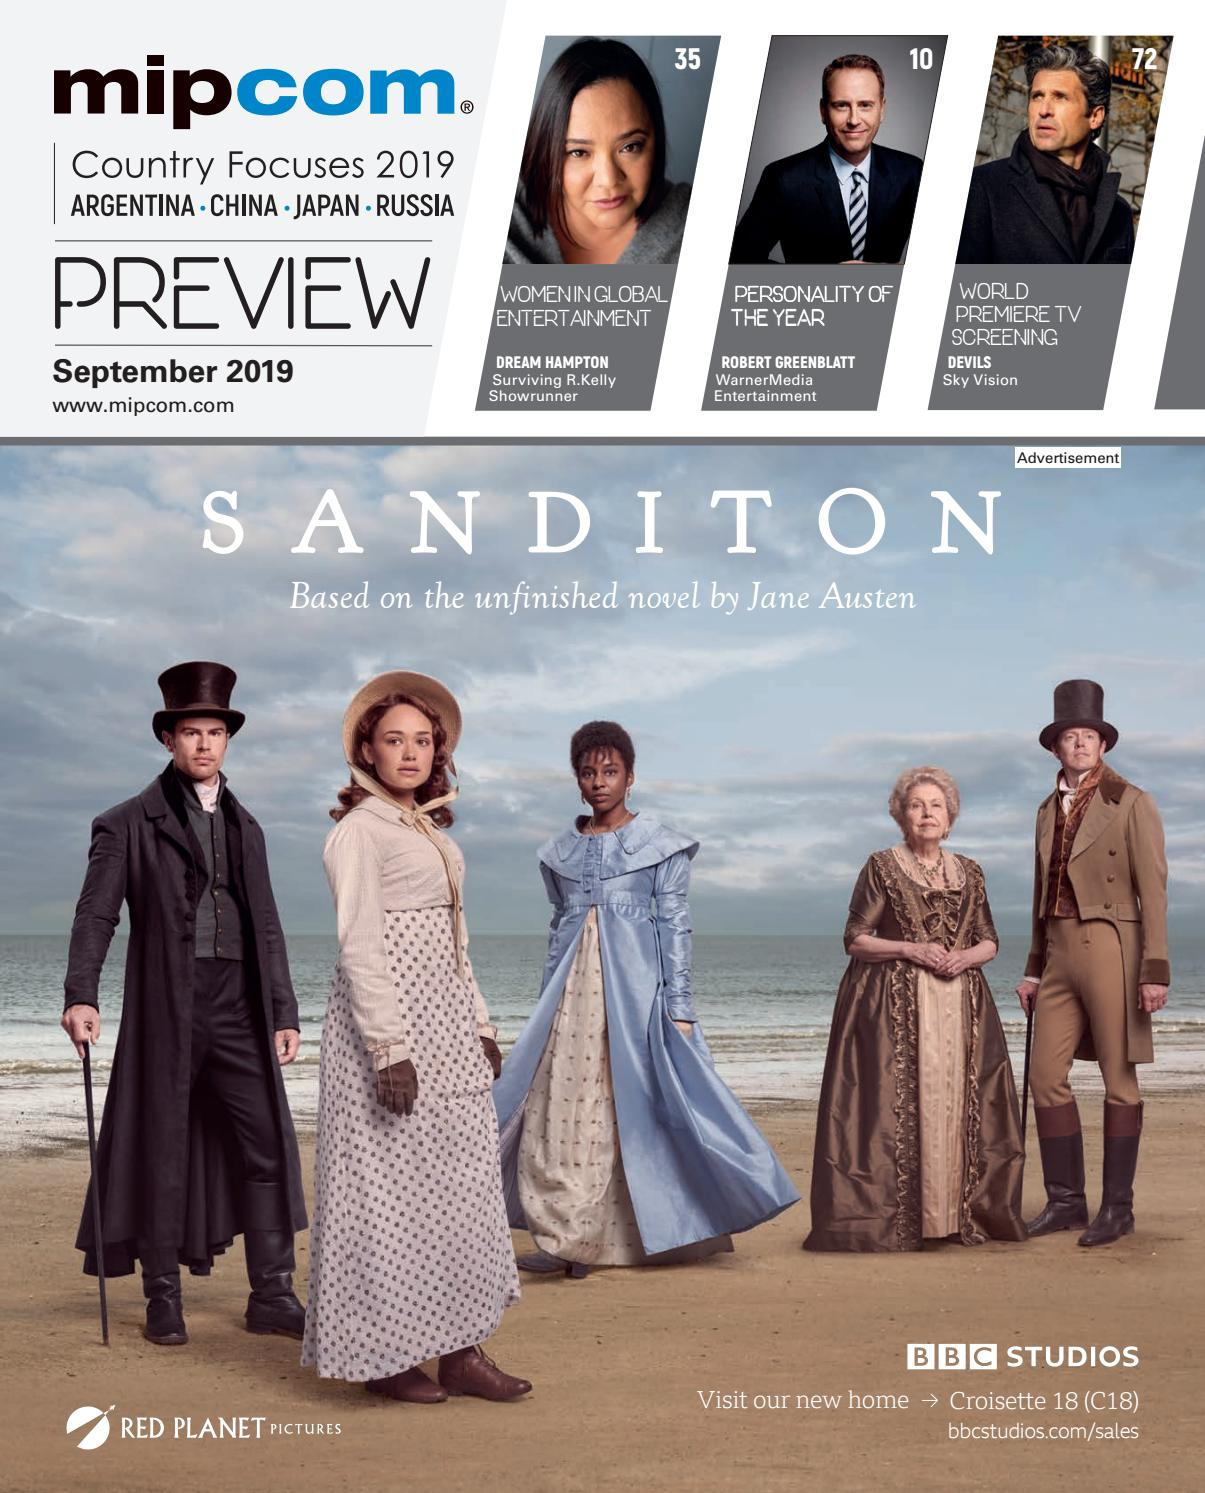 MIPCOM 2019 PREVIEW MAGAZINE by MIPMarkets - issuu